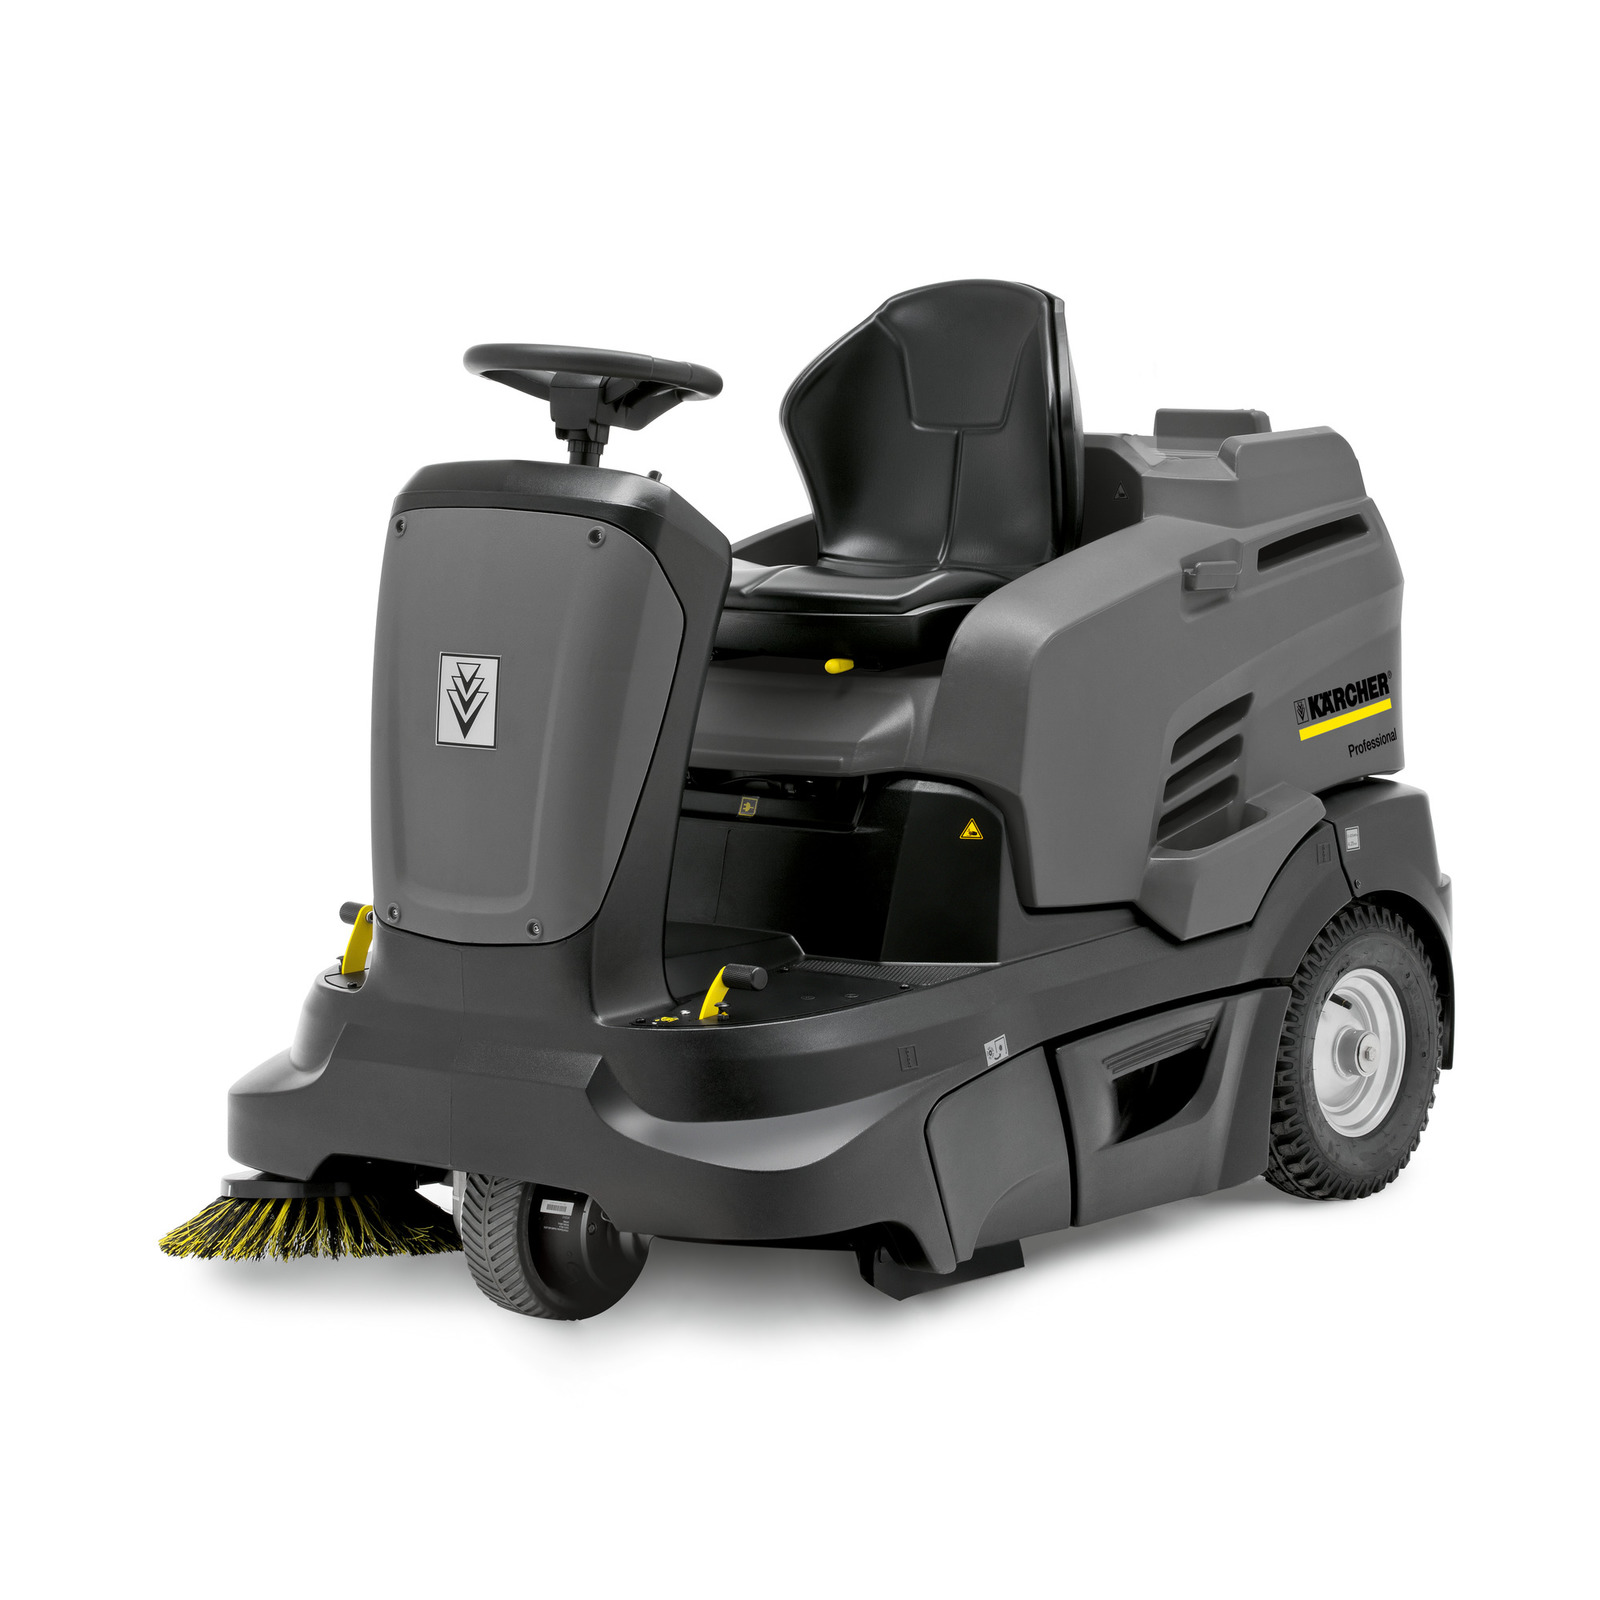 Подметальная машина Karcher KM 90/60 R Bp Pack Adv